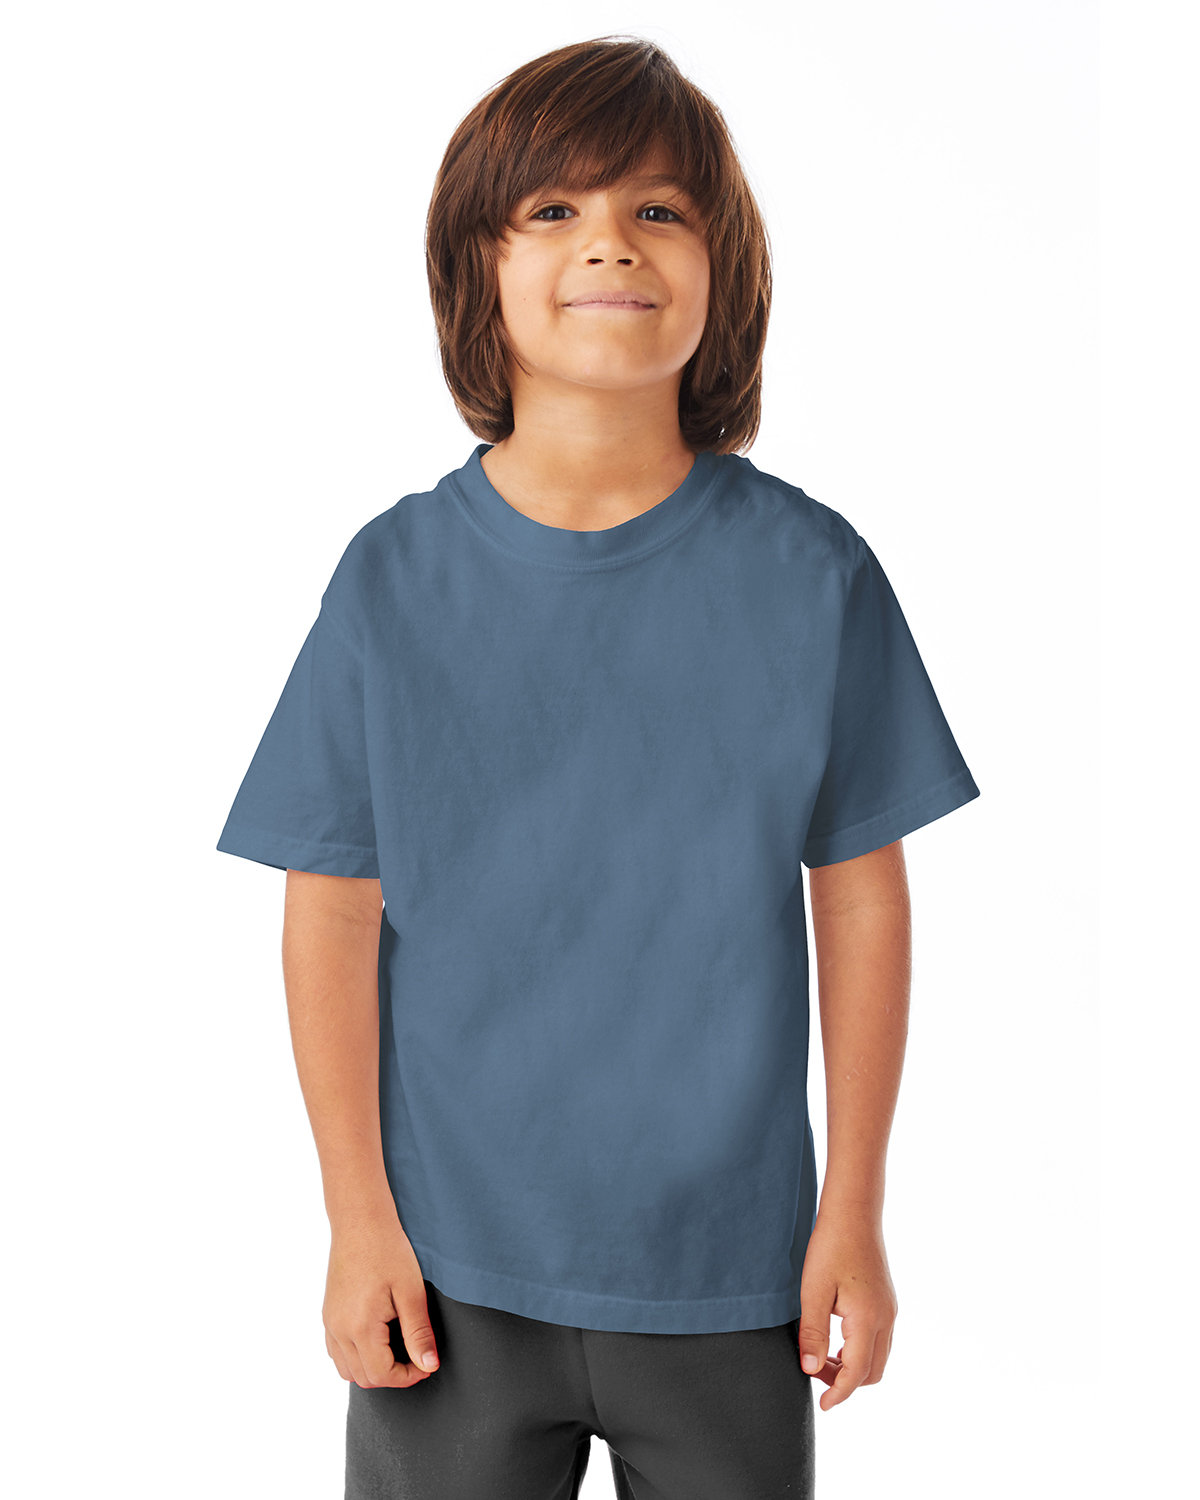 ComfortWash by Hanes Youth Garment-Dyed T-Shirt SALTWATER